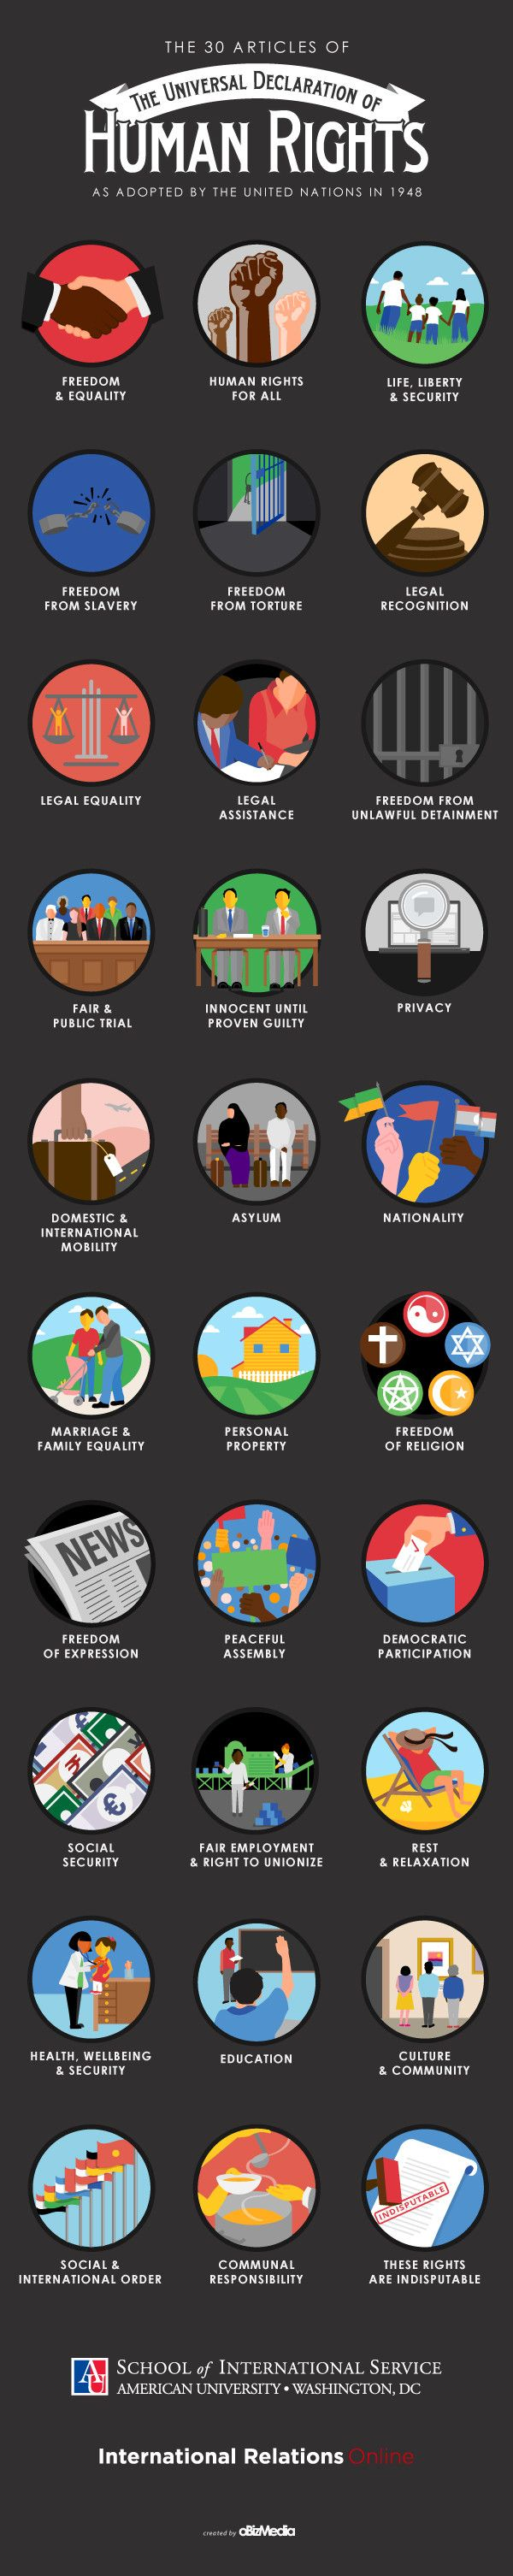 The Universal Declaration of Human Rights #infographic #HumanRights